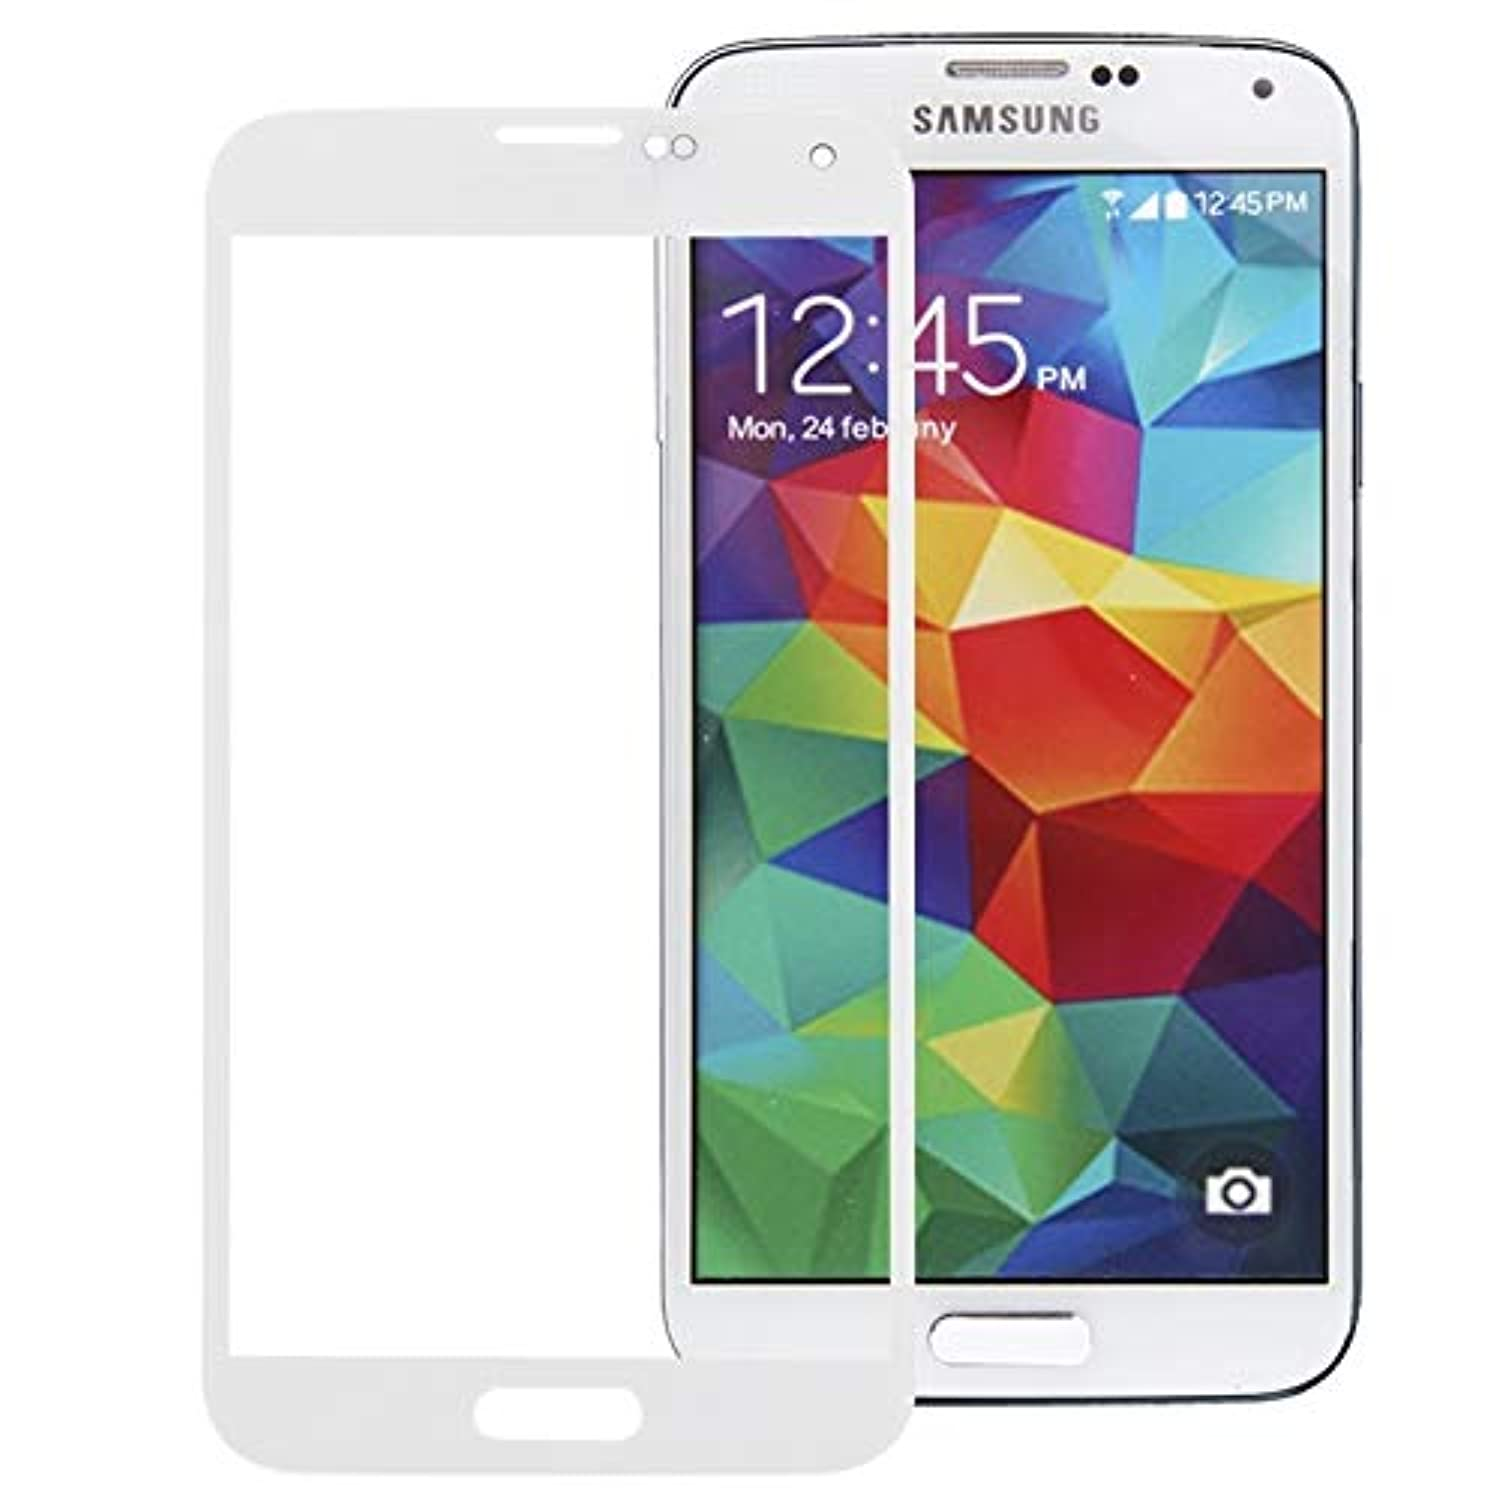 TTDY Replacement for Galaxy S5 / G900 Front Screen Outer Glass Lens(Purple) Parts (Color : White)